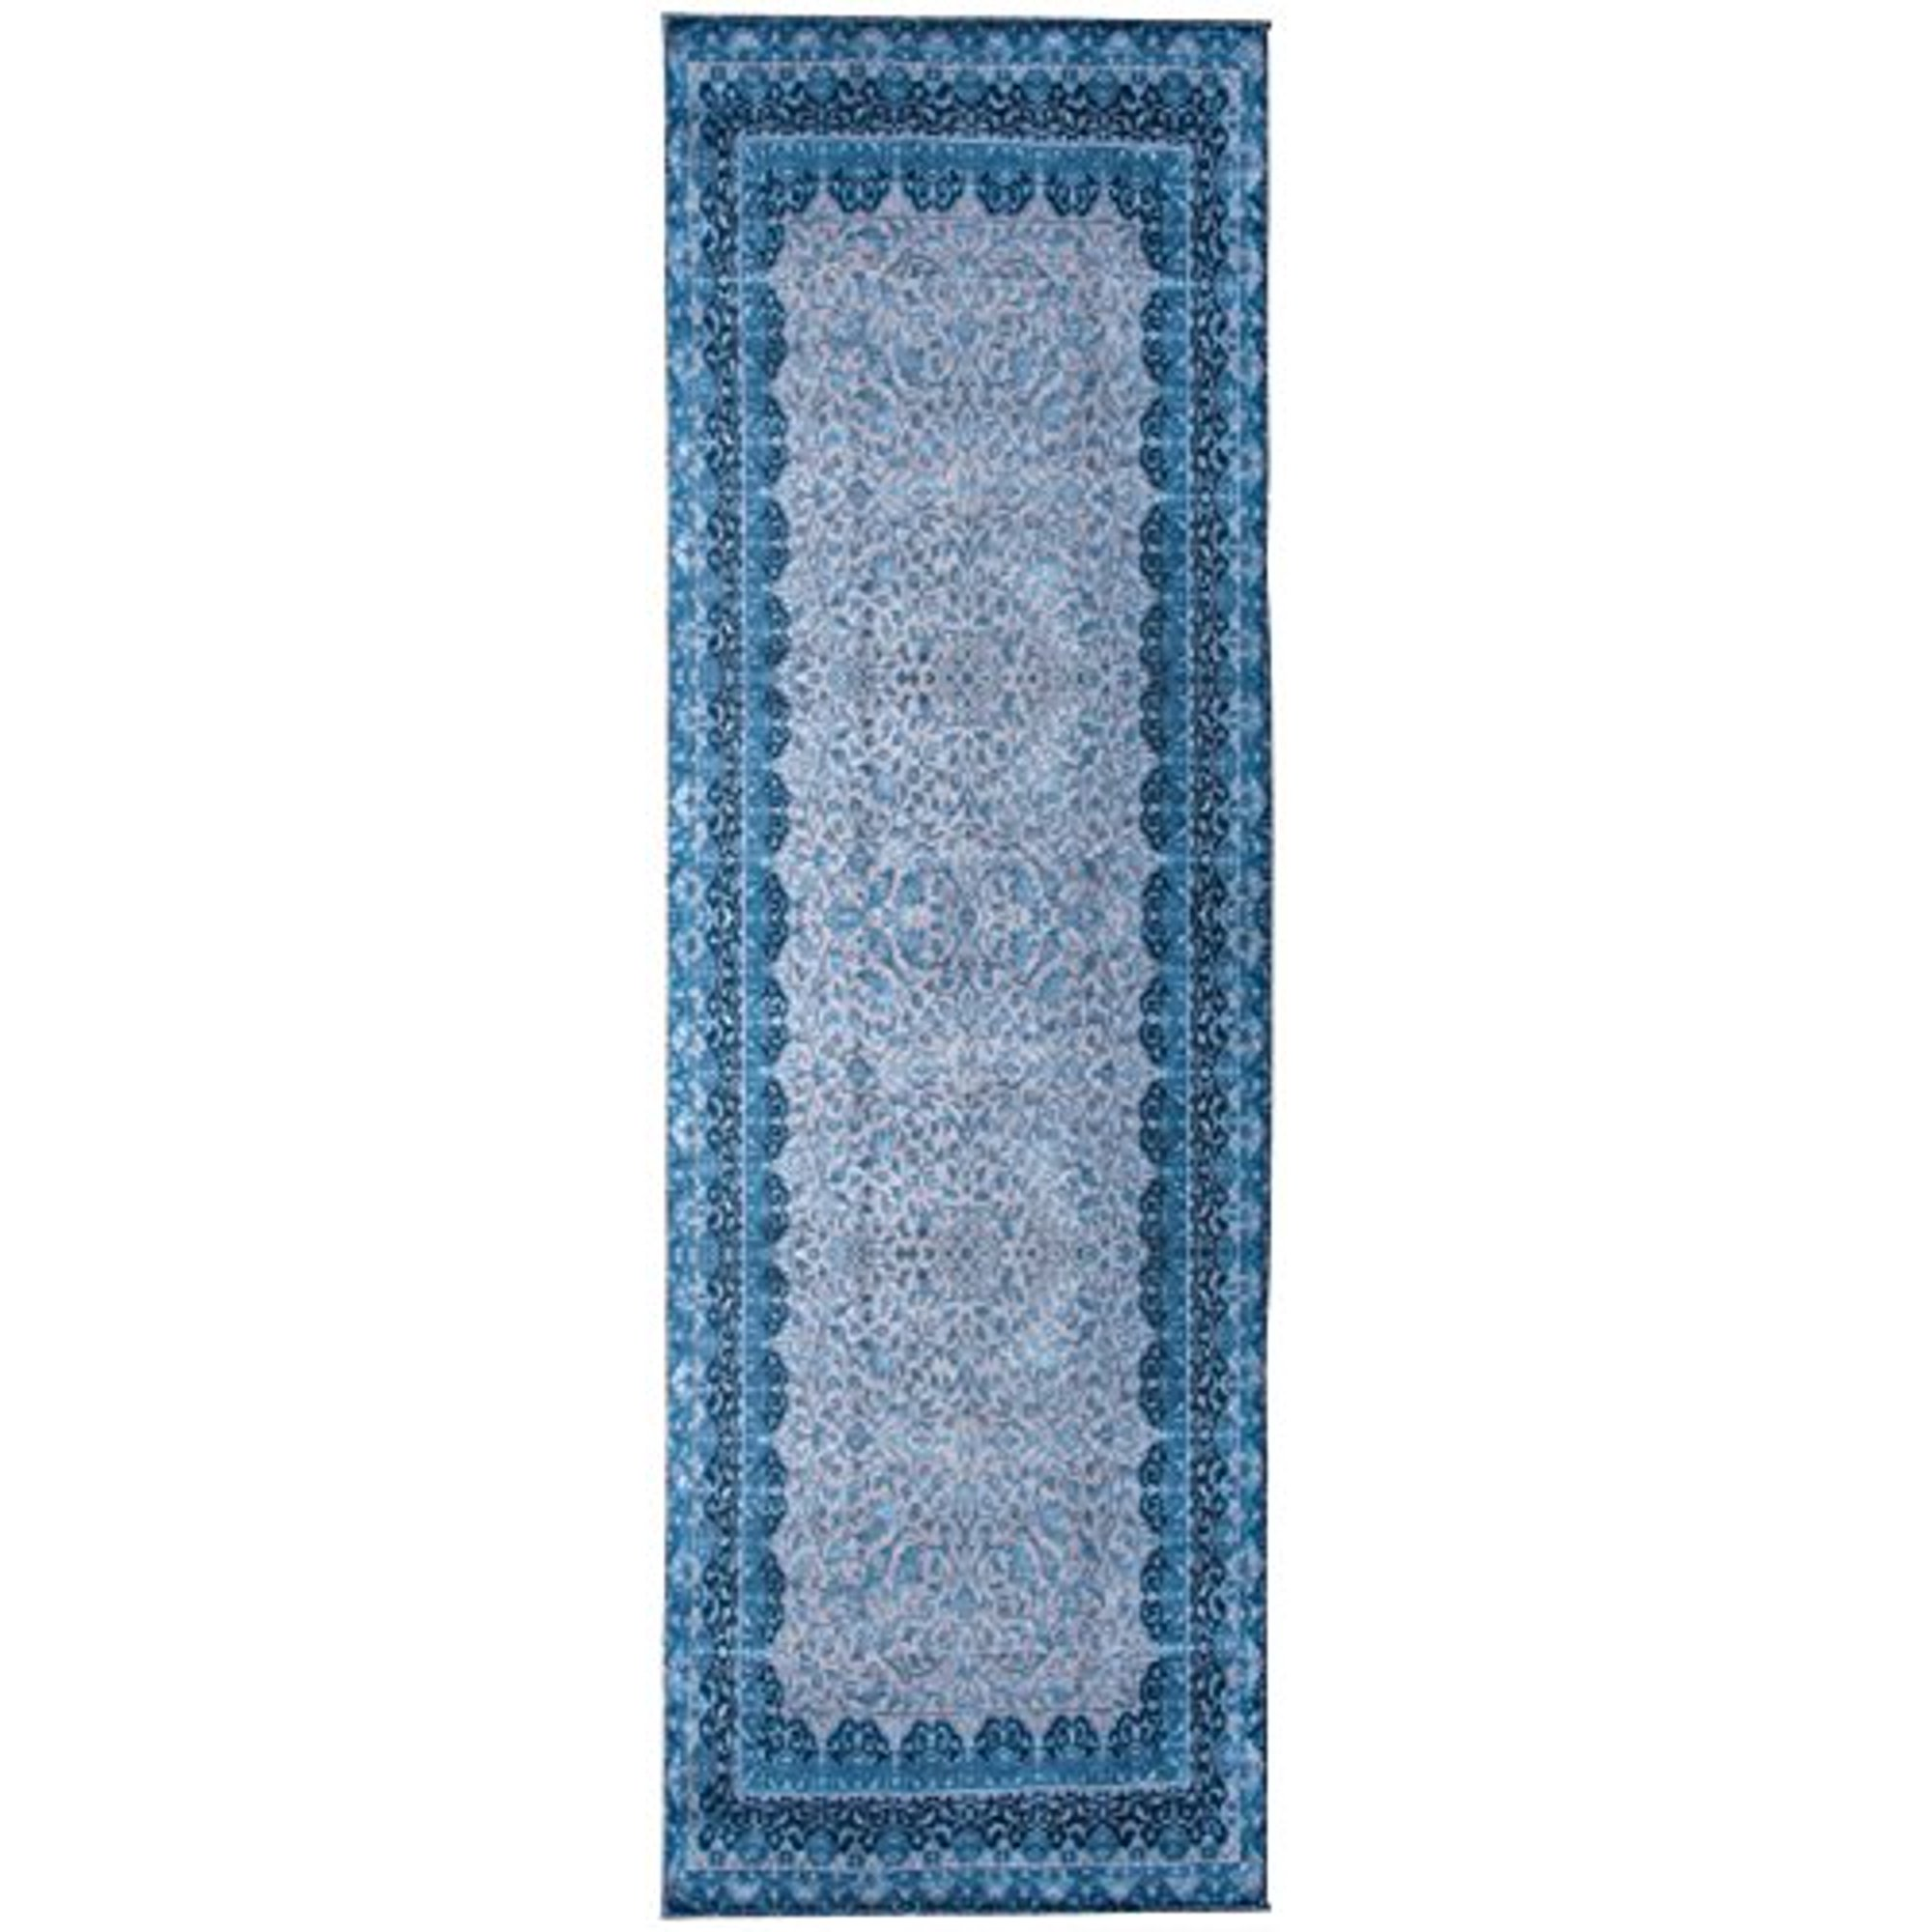 Mylife Rugs Traditional Vintage Non Slip Machine Washable Printed Area Rug Blue Grey 2 7x7 7 Walmart Canada